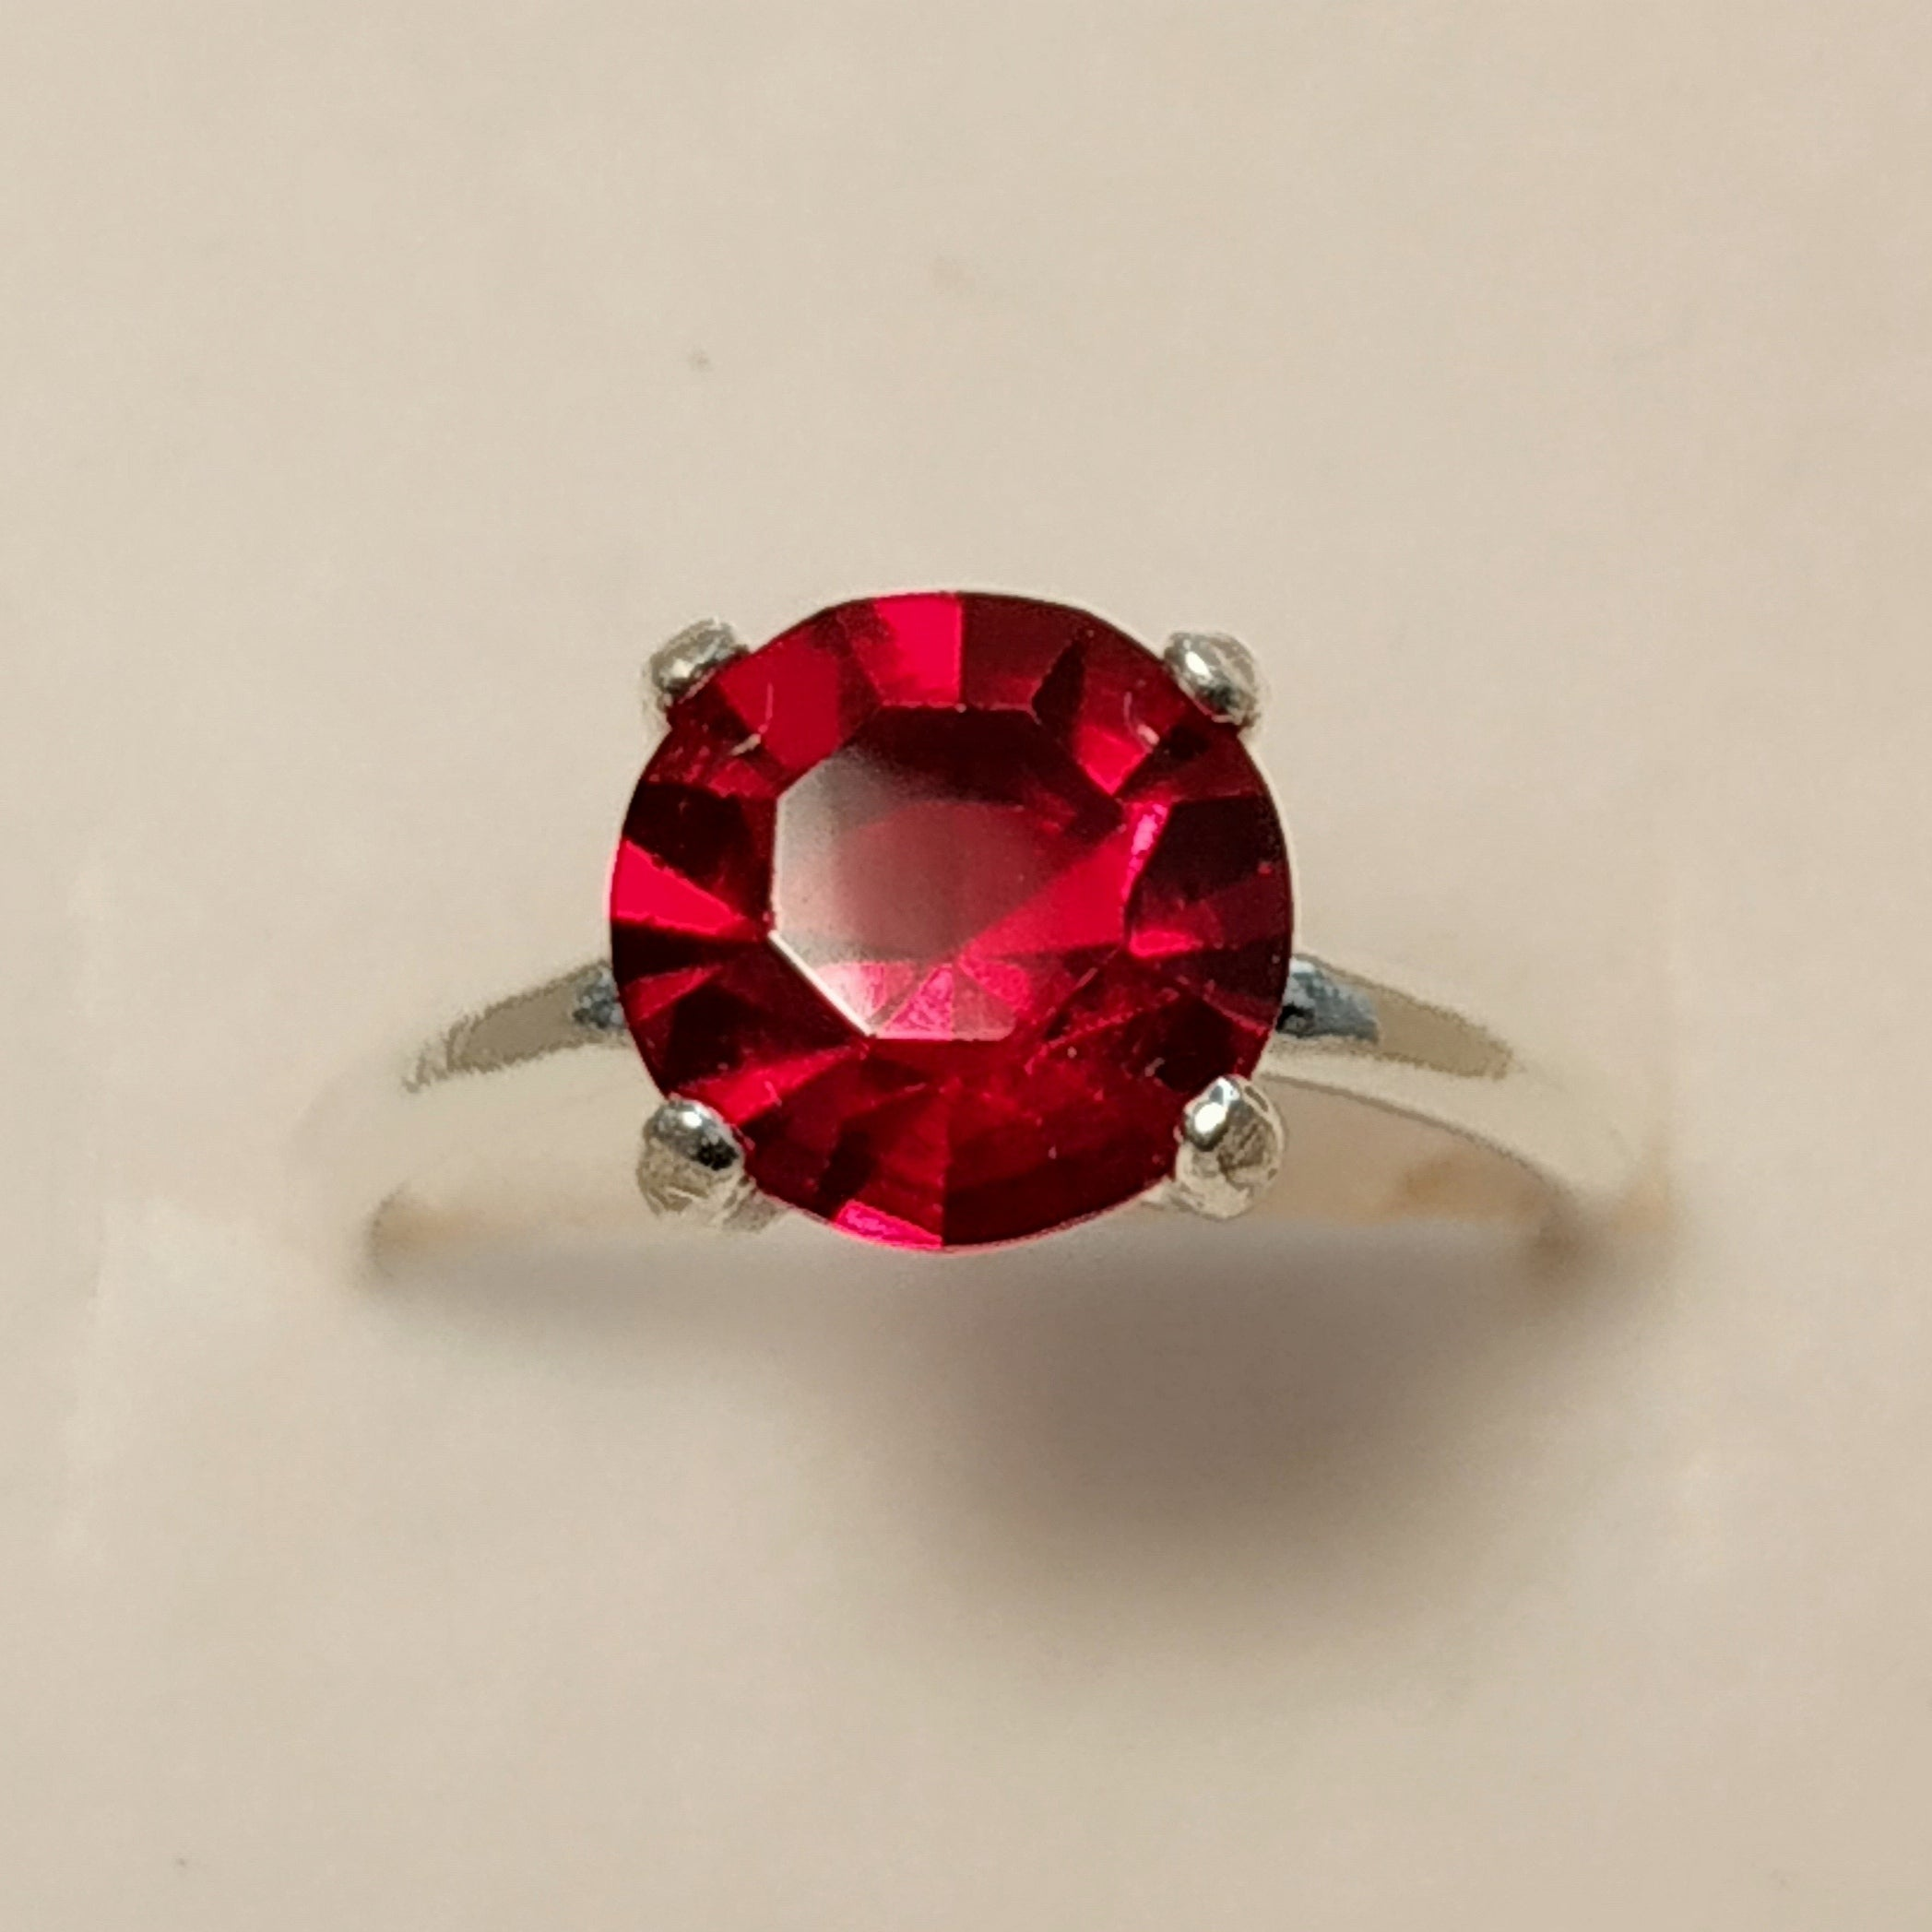 https://josefacreations.com/products/bague-solitaire-argent-cristal-swarovski-rouge.jpg